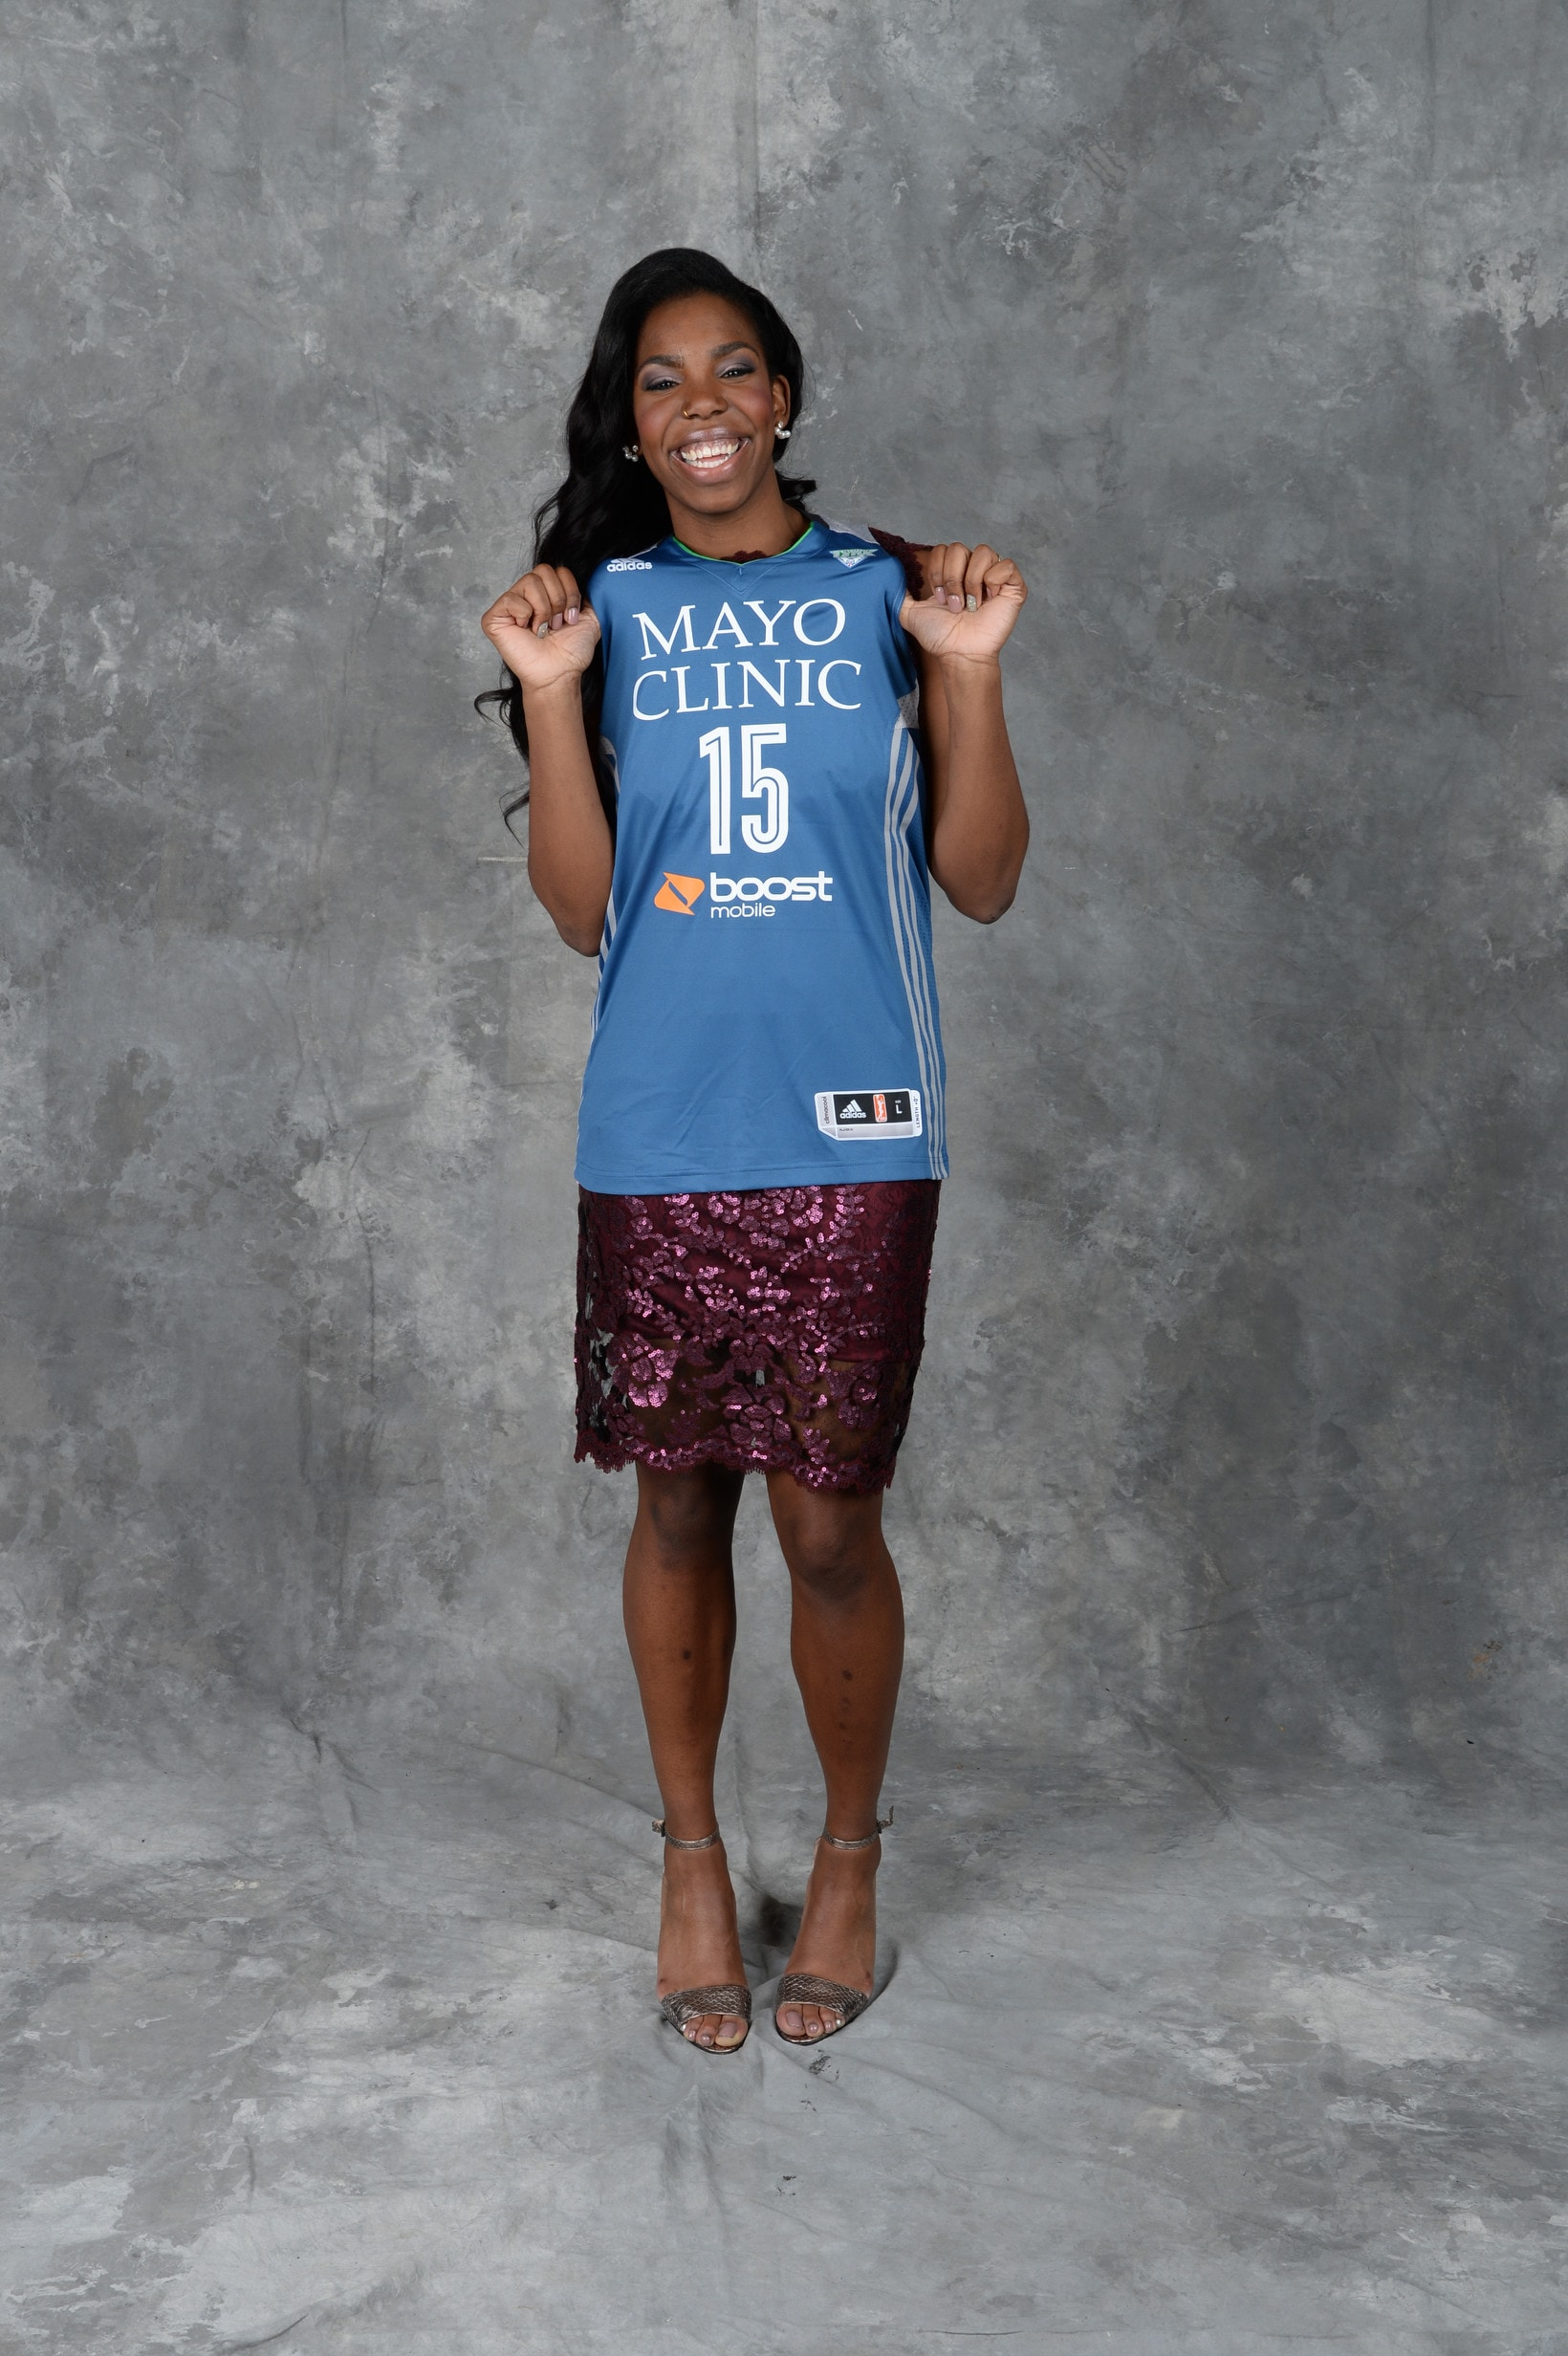 UNCASVILLE, CT - APRIL 16: The number sixteen overall pick  Reshanda Gray of the Minnesota Lynx poses for a portrait during the 2015 WNBA Draft Presented By State Farm on April 16, 2015 at Mohegan Sun Arena in Uncasville, Connecticut.  NOTE TO USER: User expressly acknowledges and agrees that, by downloading and/or using this Photograph, user is consenting to the terms and conditions of the Getty Images License Agreement. Mandatory Copyright Notice: Copyright 2015 NBAE  (Photo by Jennifer Pottheiser/NBAE via Getty Images)